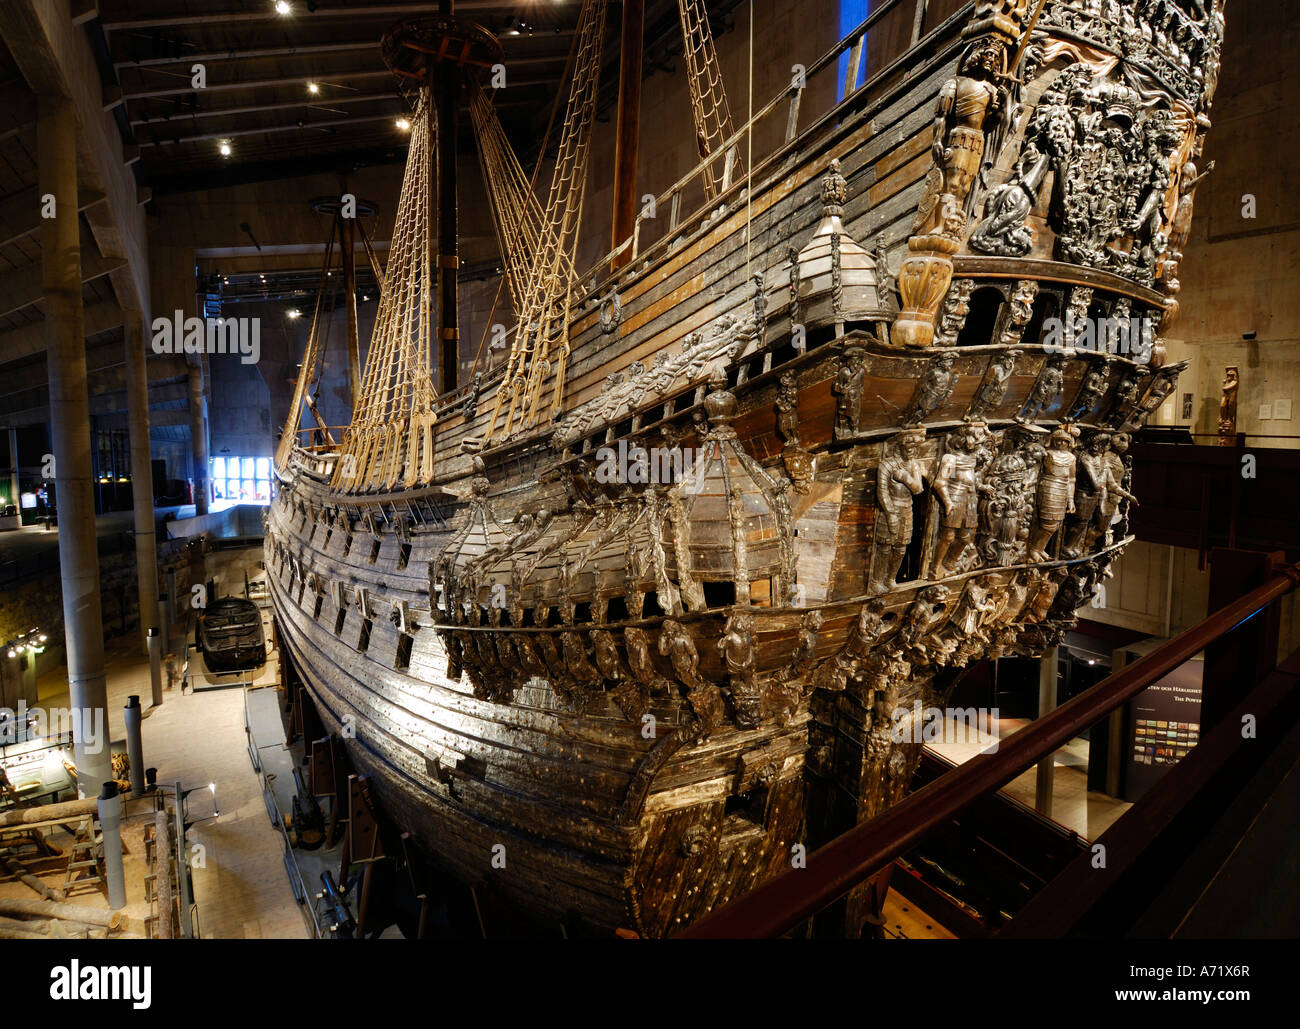 The well preserved 17th century battleship Vasa at the Vasa museum in Stockholm is one of Sweden's biggest tourist attractions Stock Photo